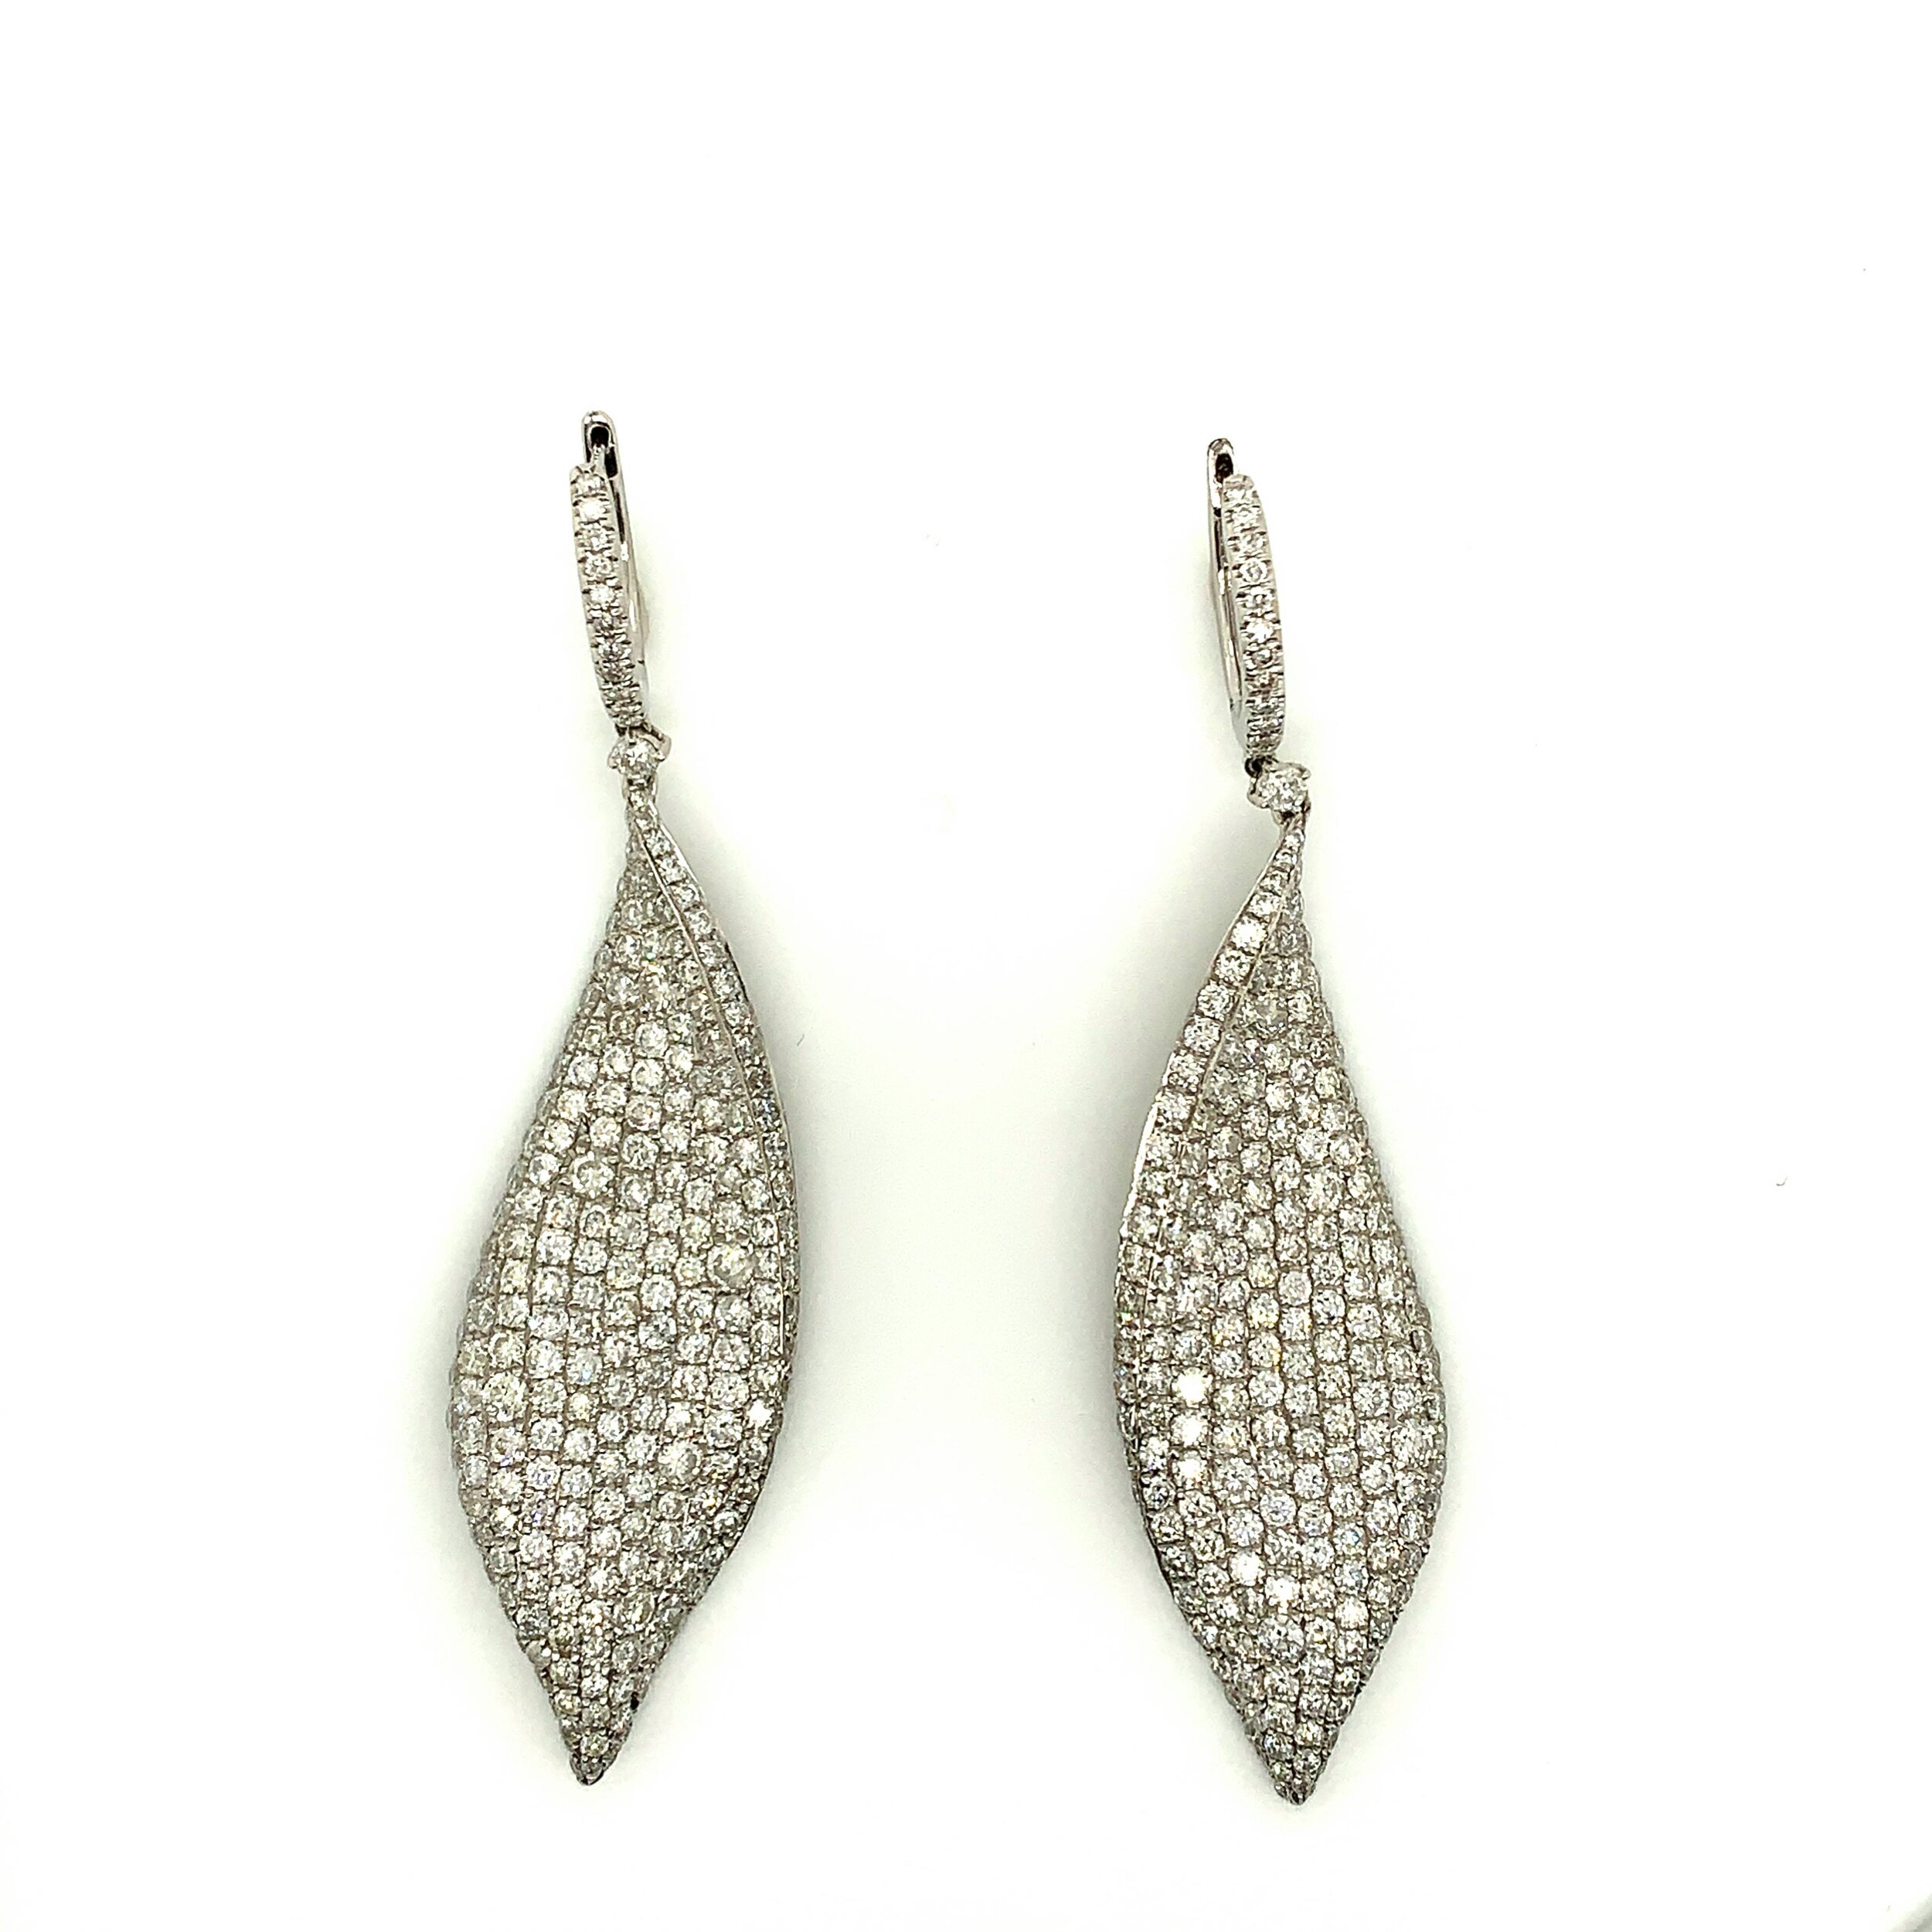 8.0ct Pave Diamond Drop Leaf Earrings Set in 18kt White Gold   Est. US$ 5,000-6,500